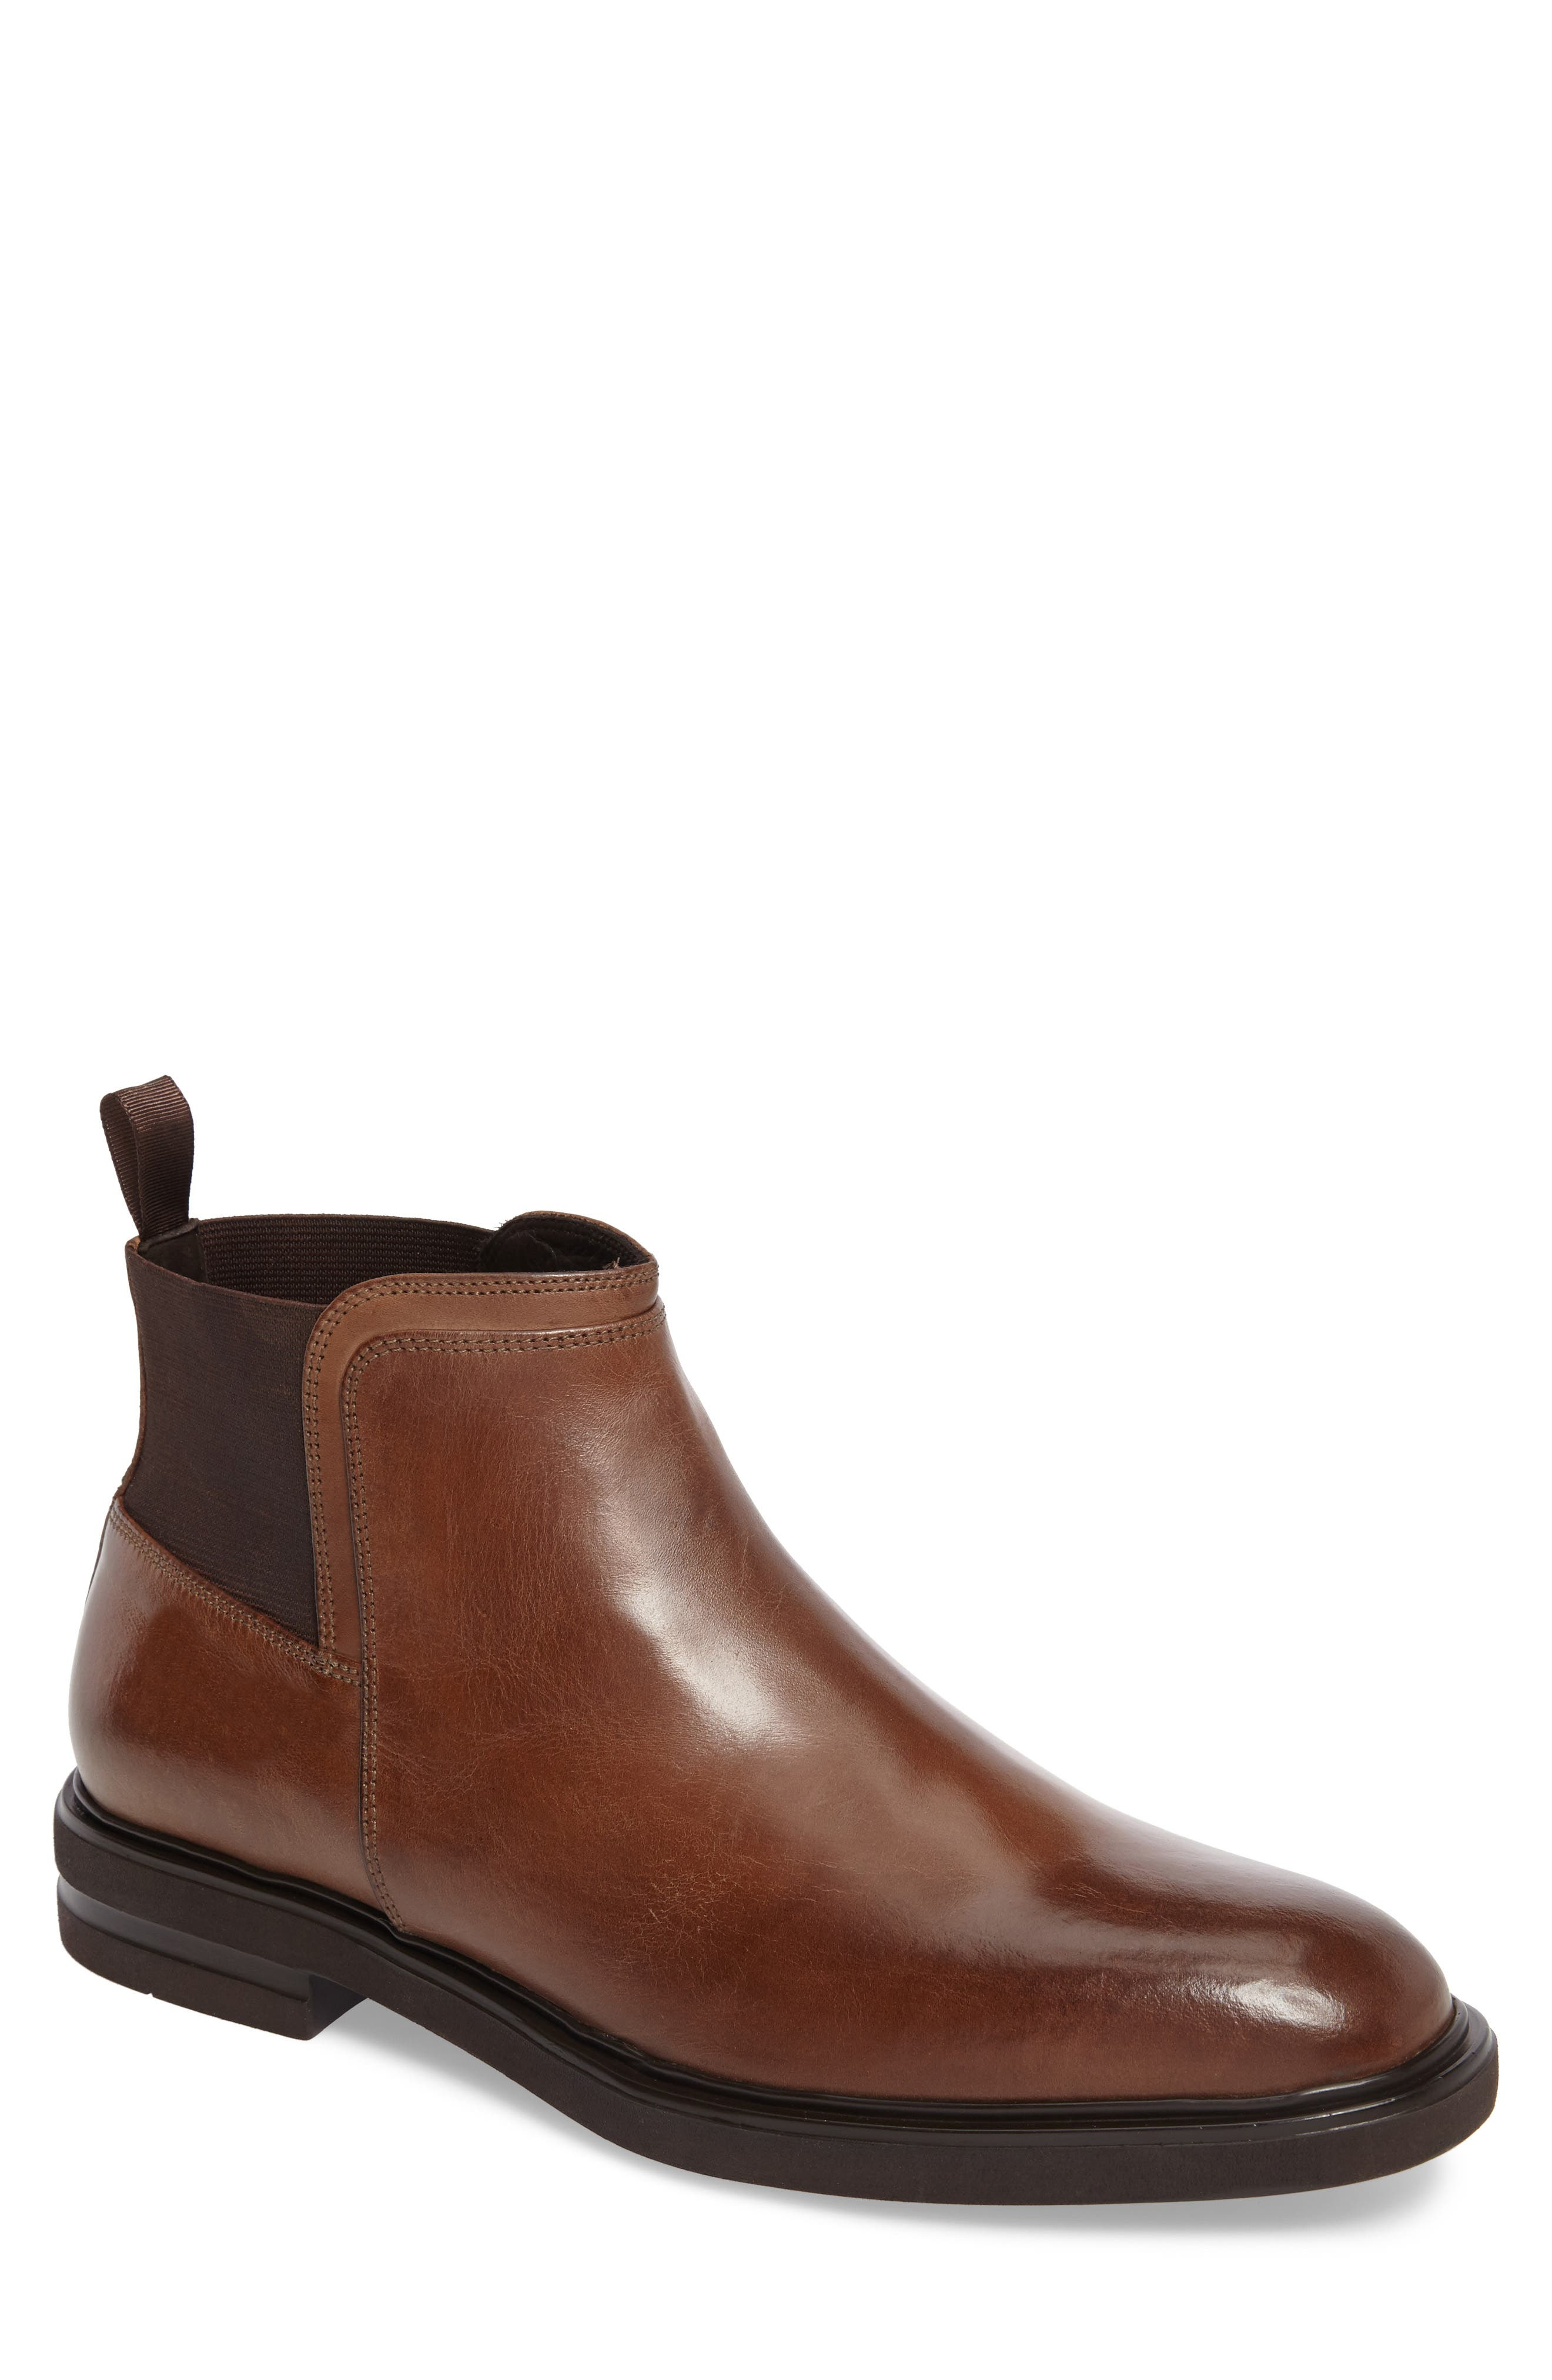 Enrico Chelsea Boot,                         Main,                         color, Expresso